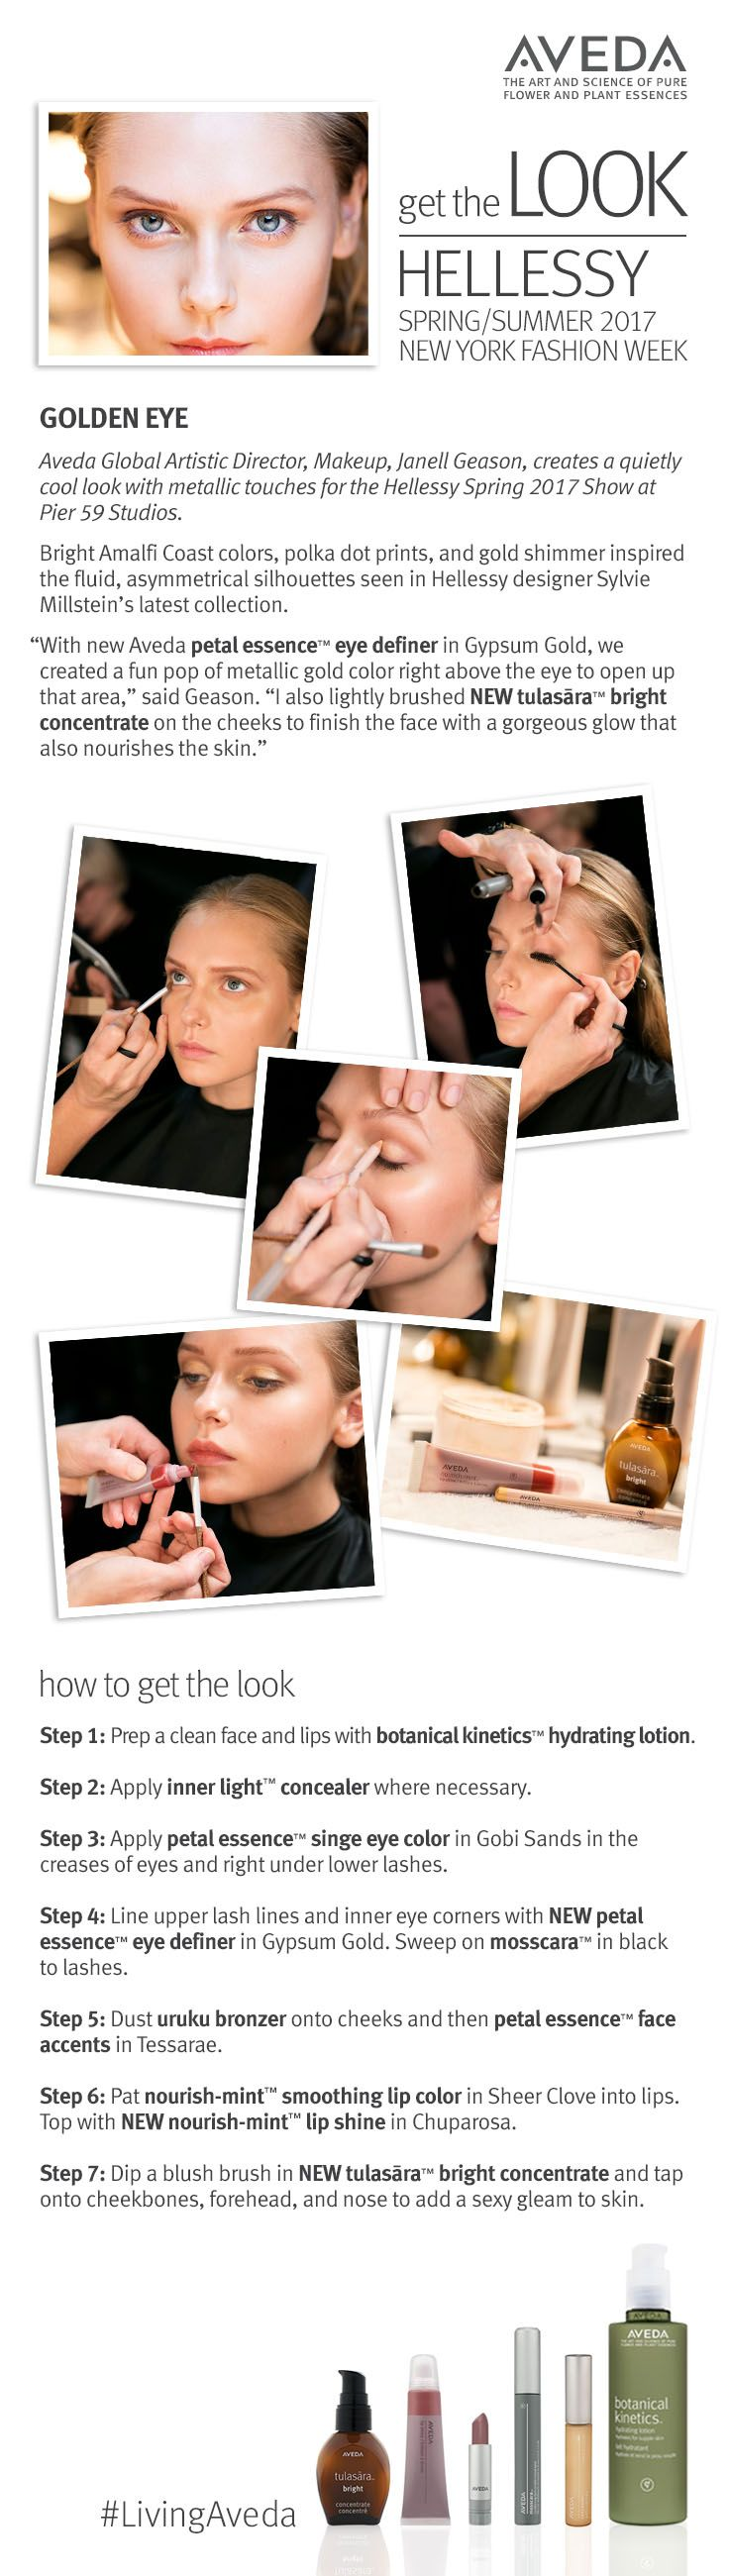 Get the glowing golden Aveda makeup look from Hellessy's NYFW show, created by Aveda Global Artistic Director for Makeup Janell Geason.